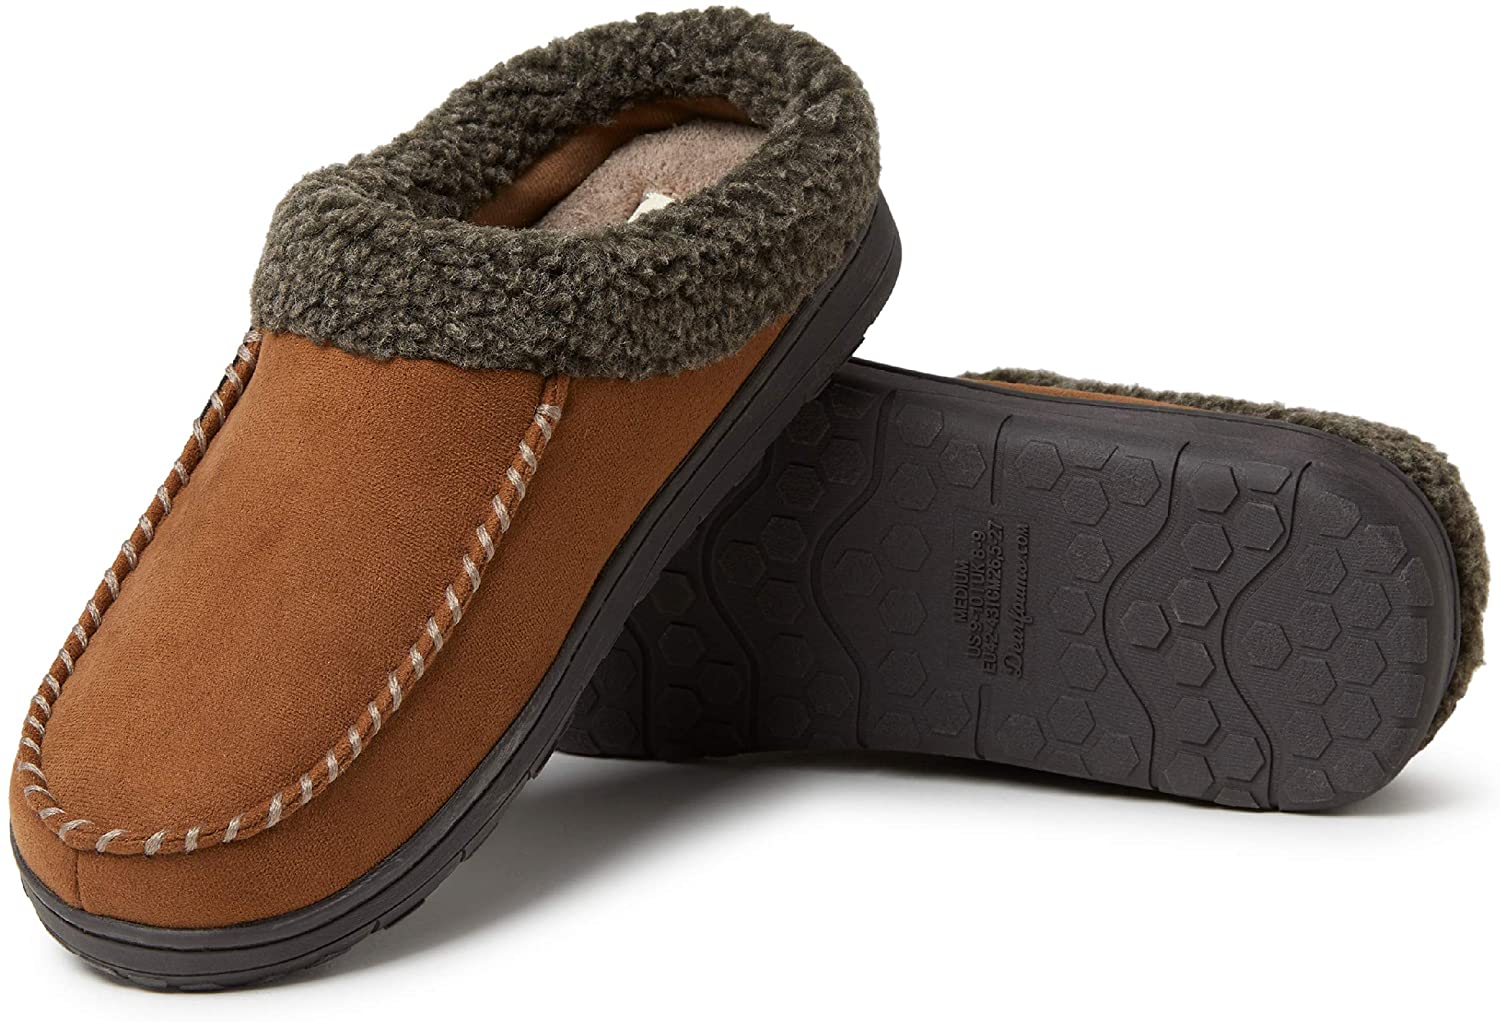 Dearfoams Men's Microfiber Suede Clog with Whipstitch Slipper